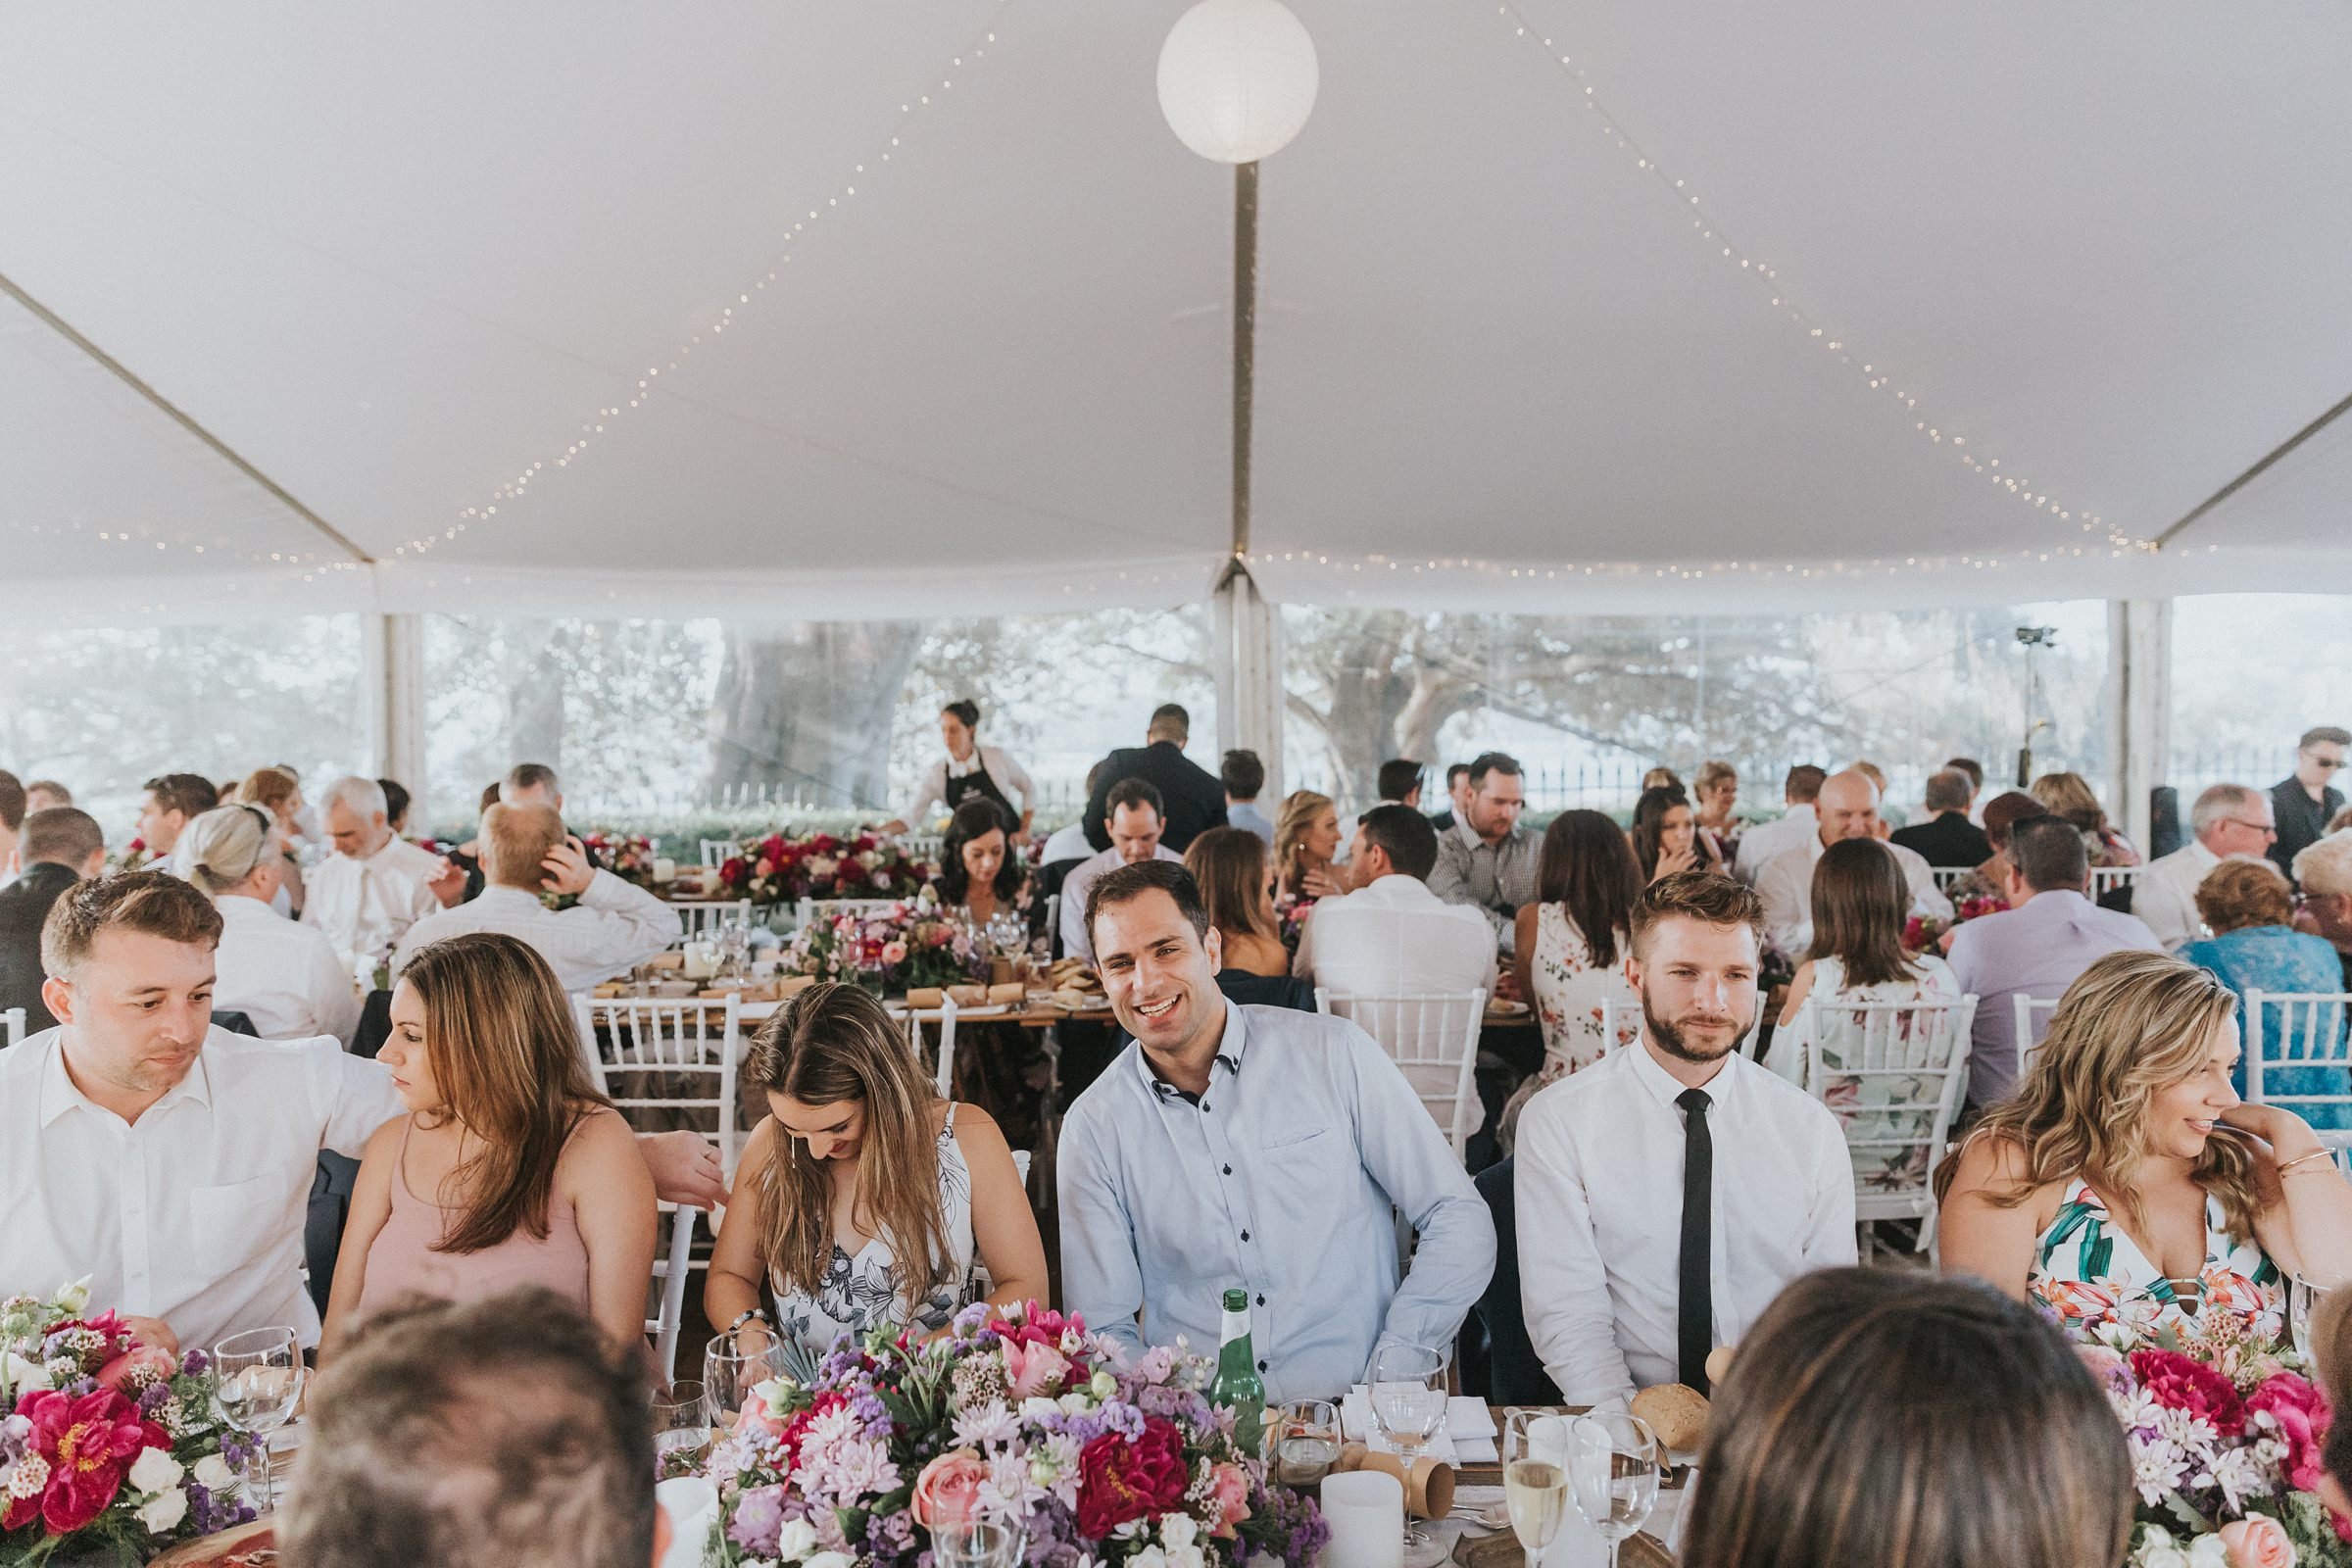 guests in the marquee for wedding reception